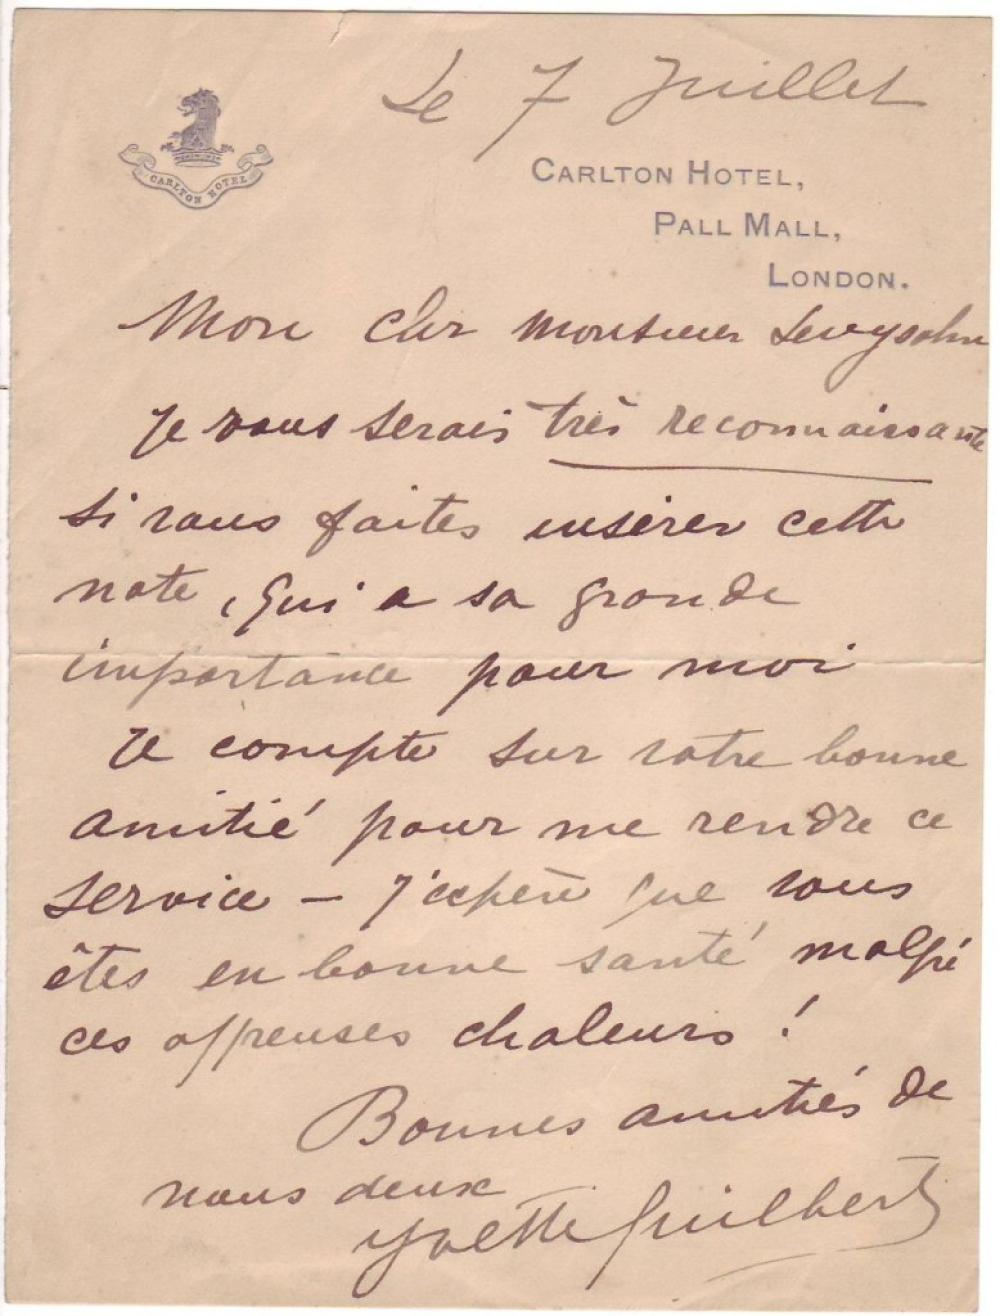 GUILBERT, YVETTE. Autograph Letter Signed, to